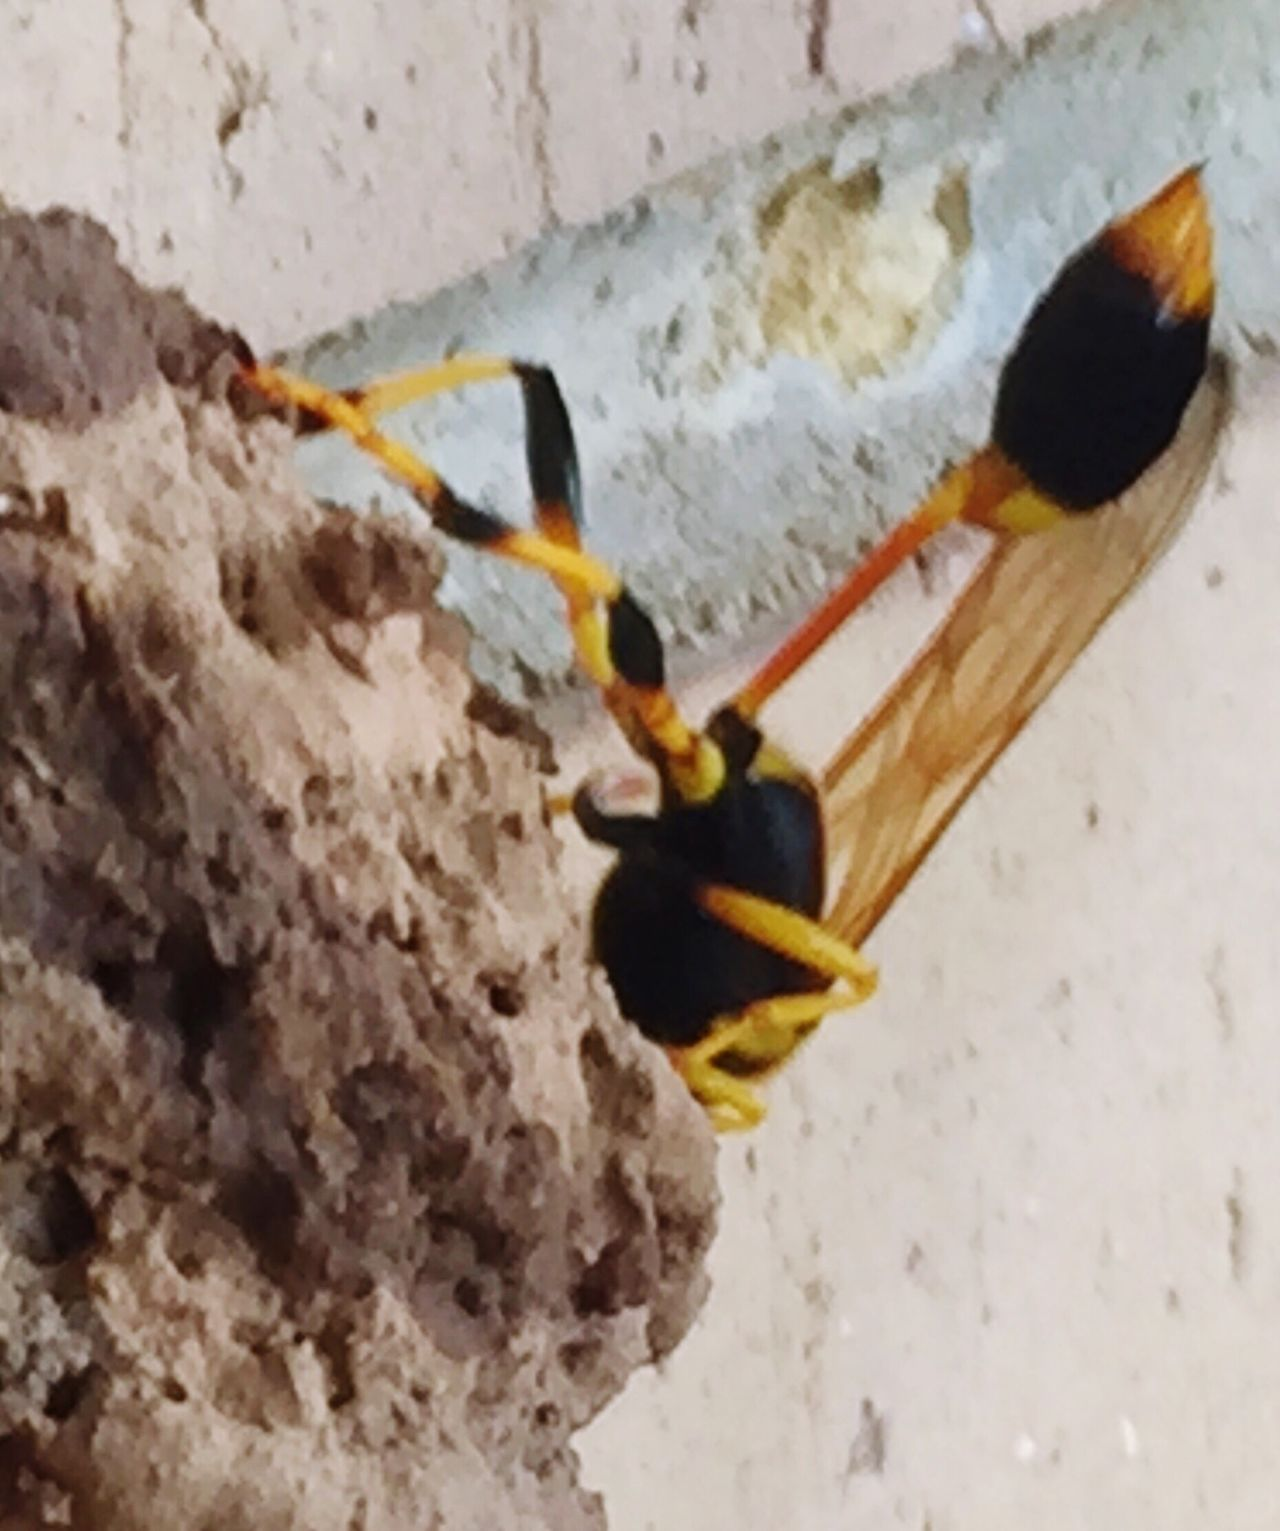 Macro Beauty Wasp Black And Yellow  BANDED  Insect Sting Mud Nest Wasps Nest Wings Nature_collection Six Legged Fascinating